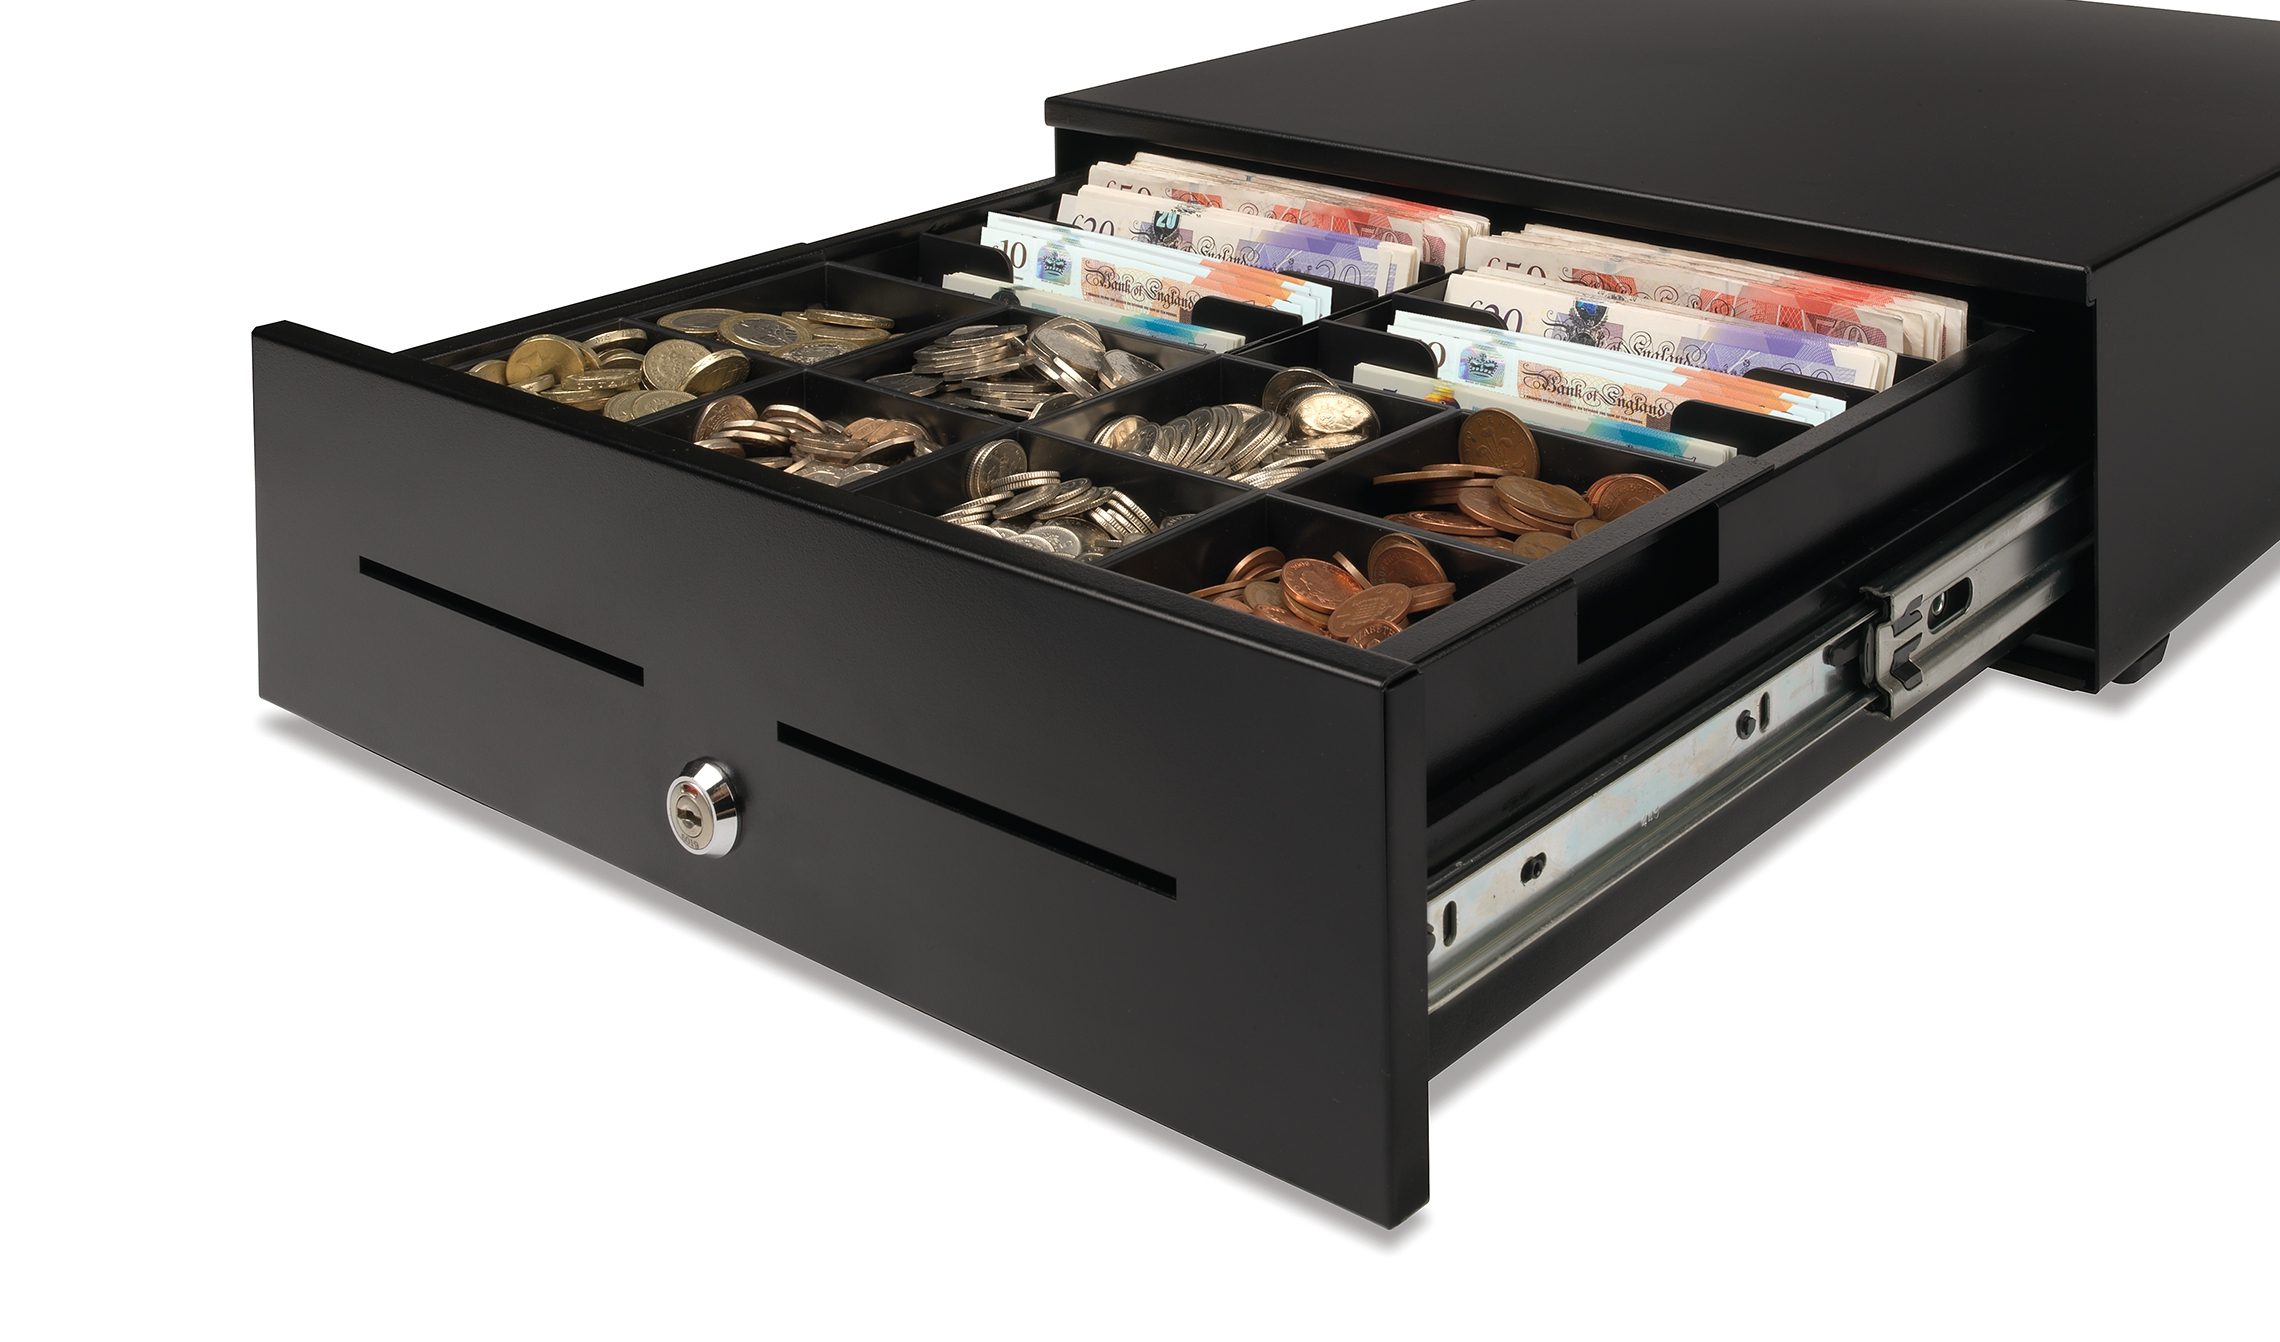 safescan-4142-cash-drawer